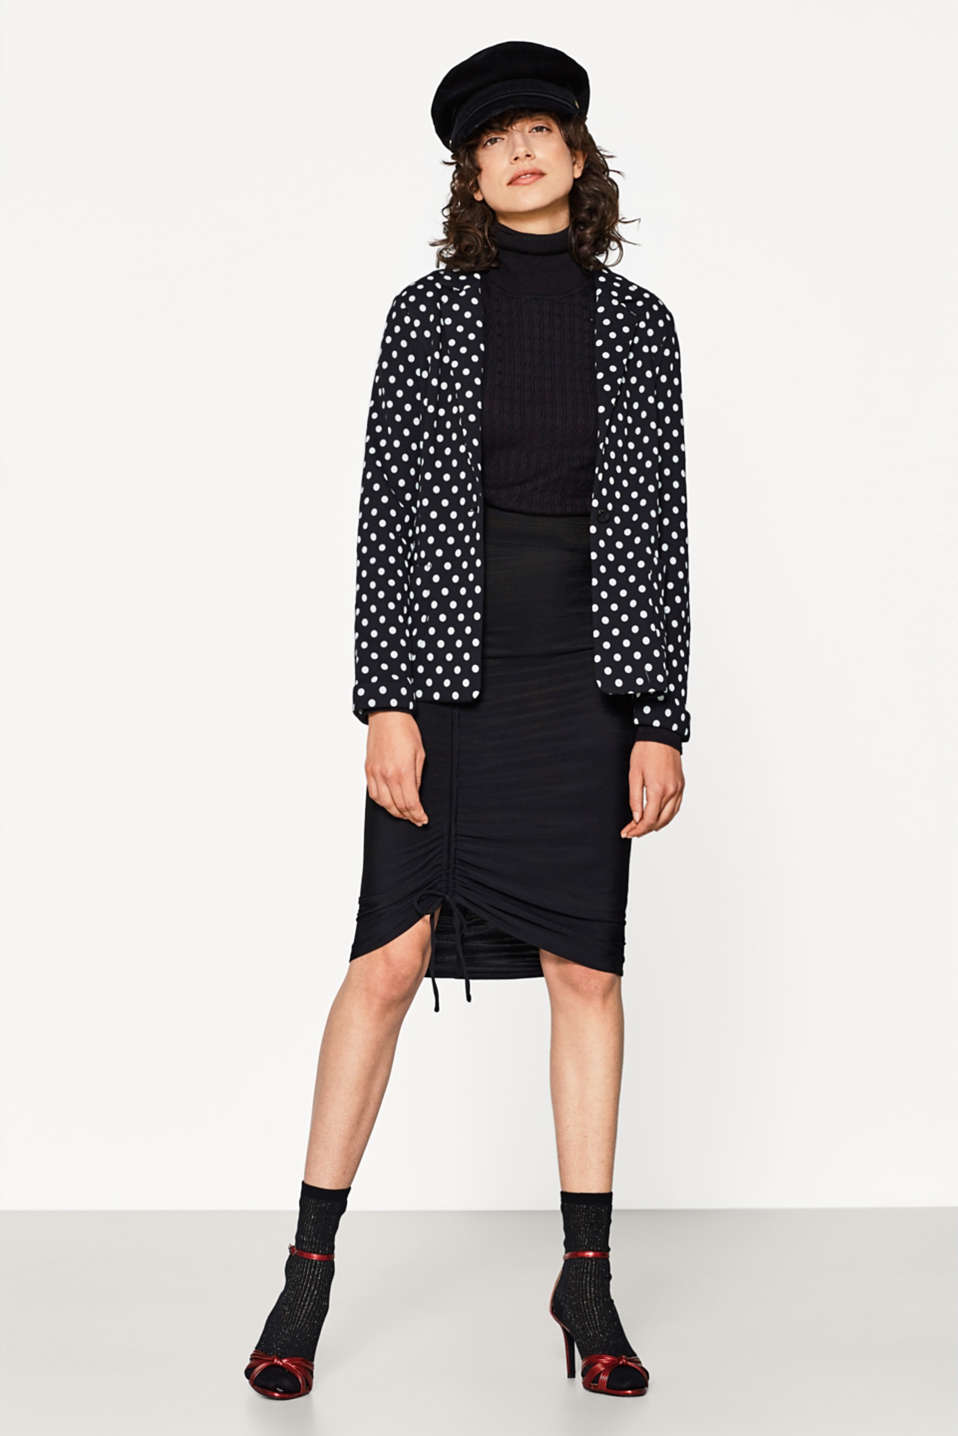 Cotton blazer with polka dots